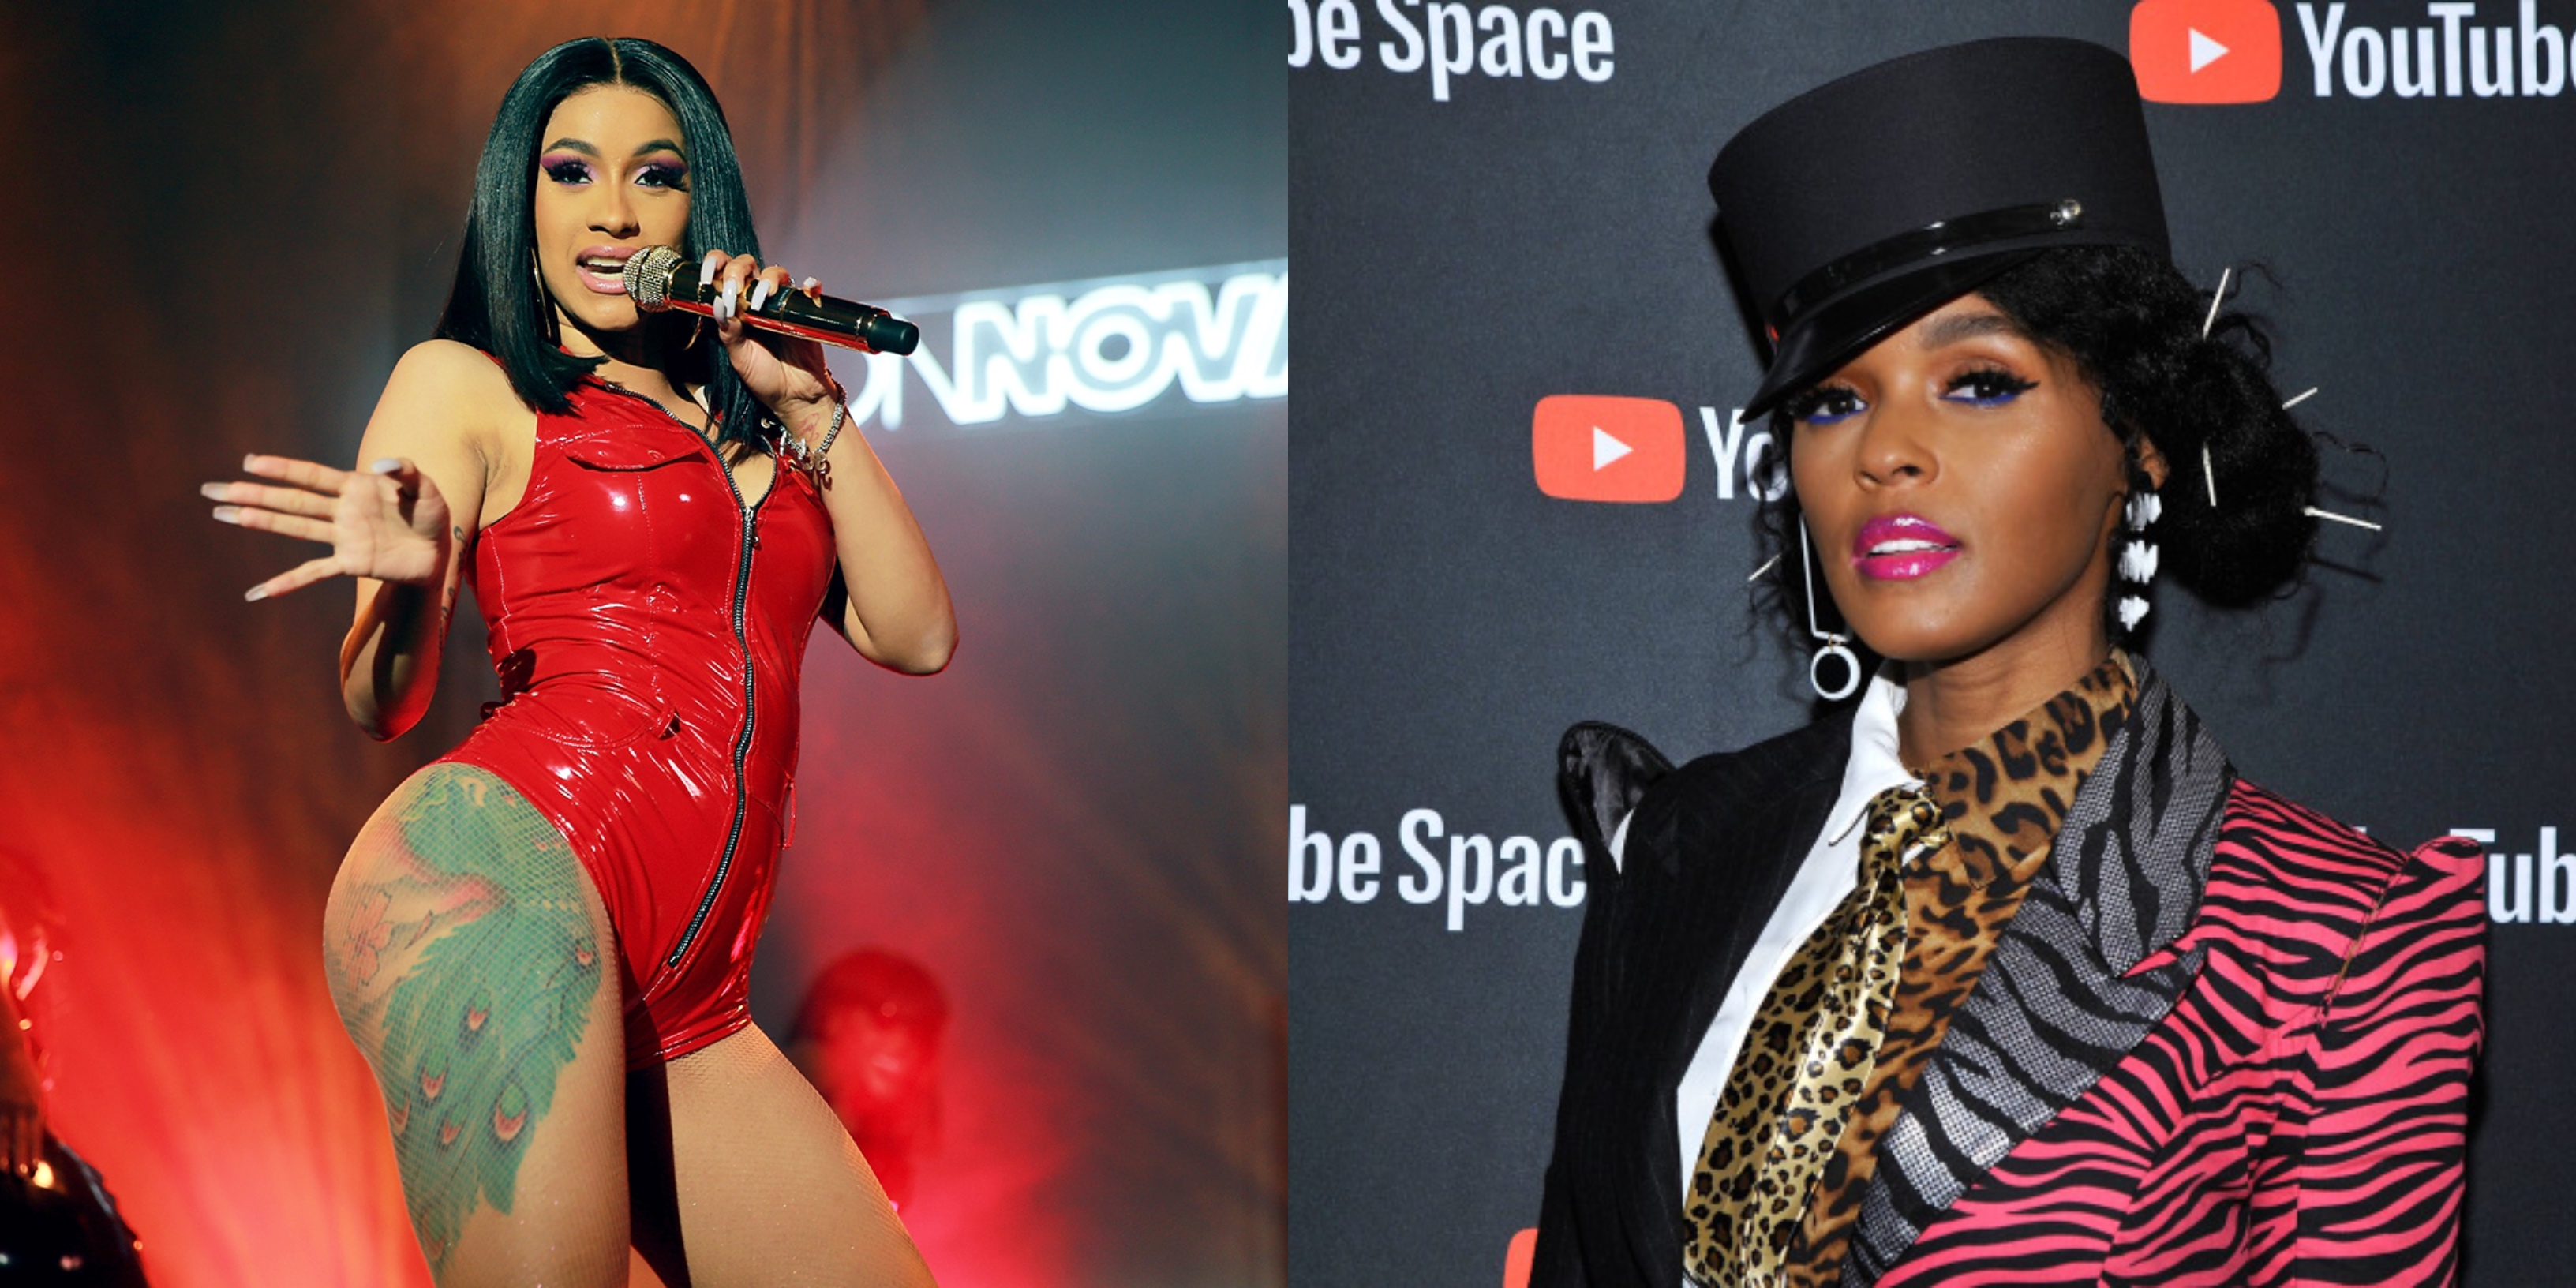 Cardi B, Janelle Monae, and Shawn Mendes are the first set of performers announced to take the Grammys stage this year.